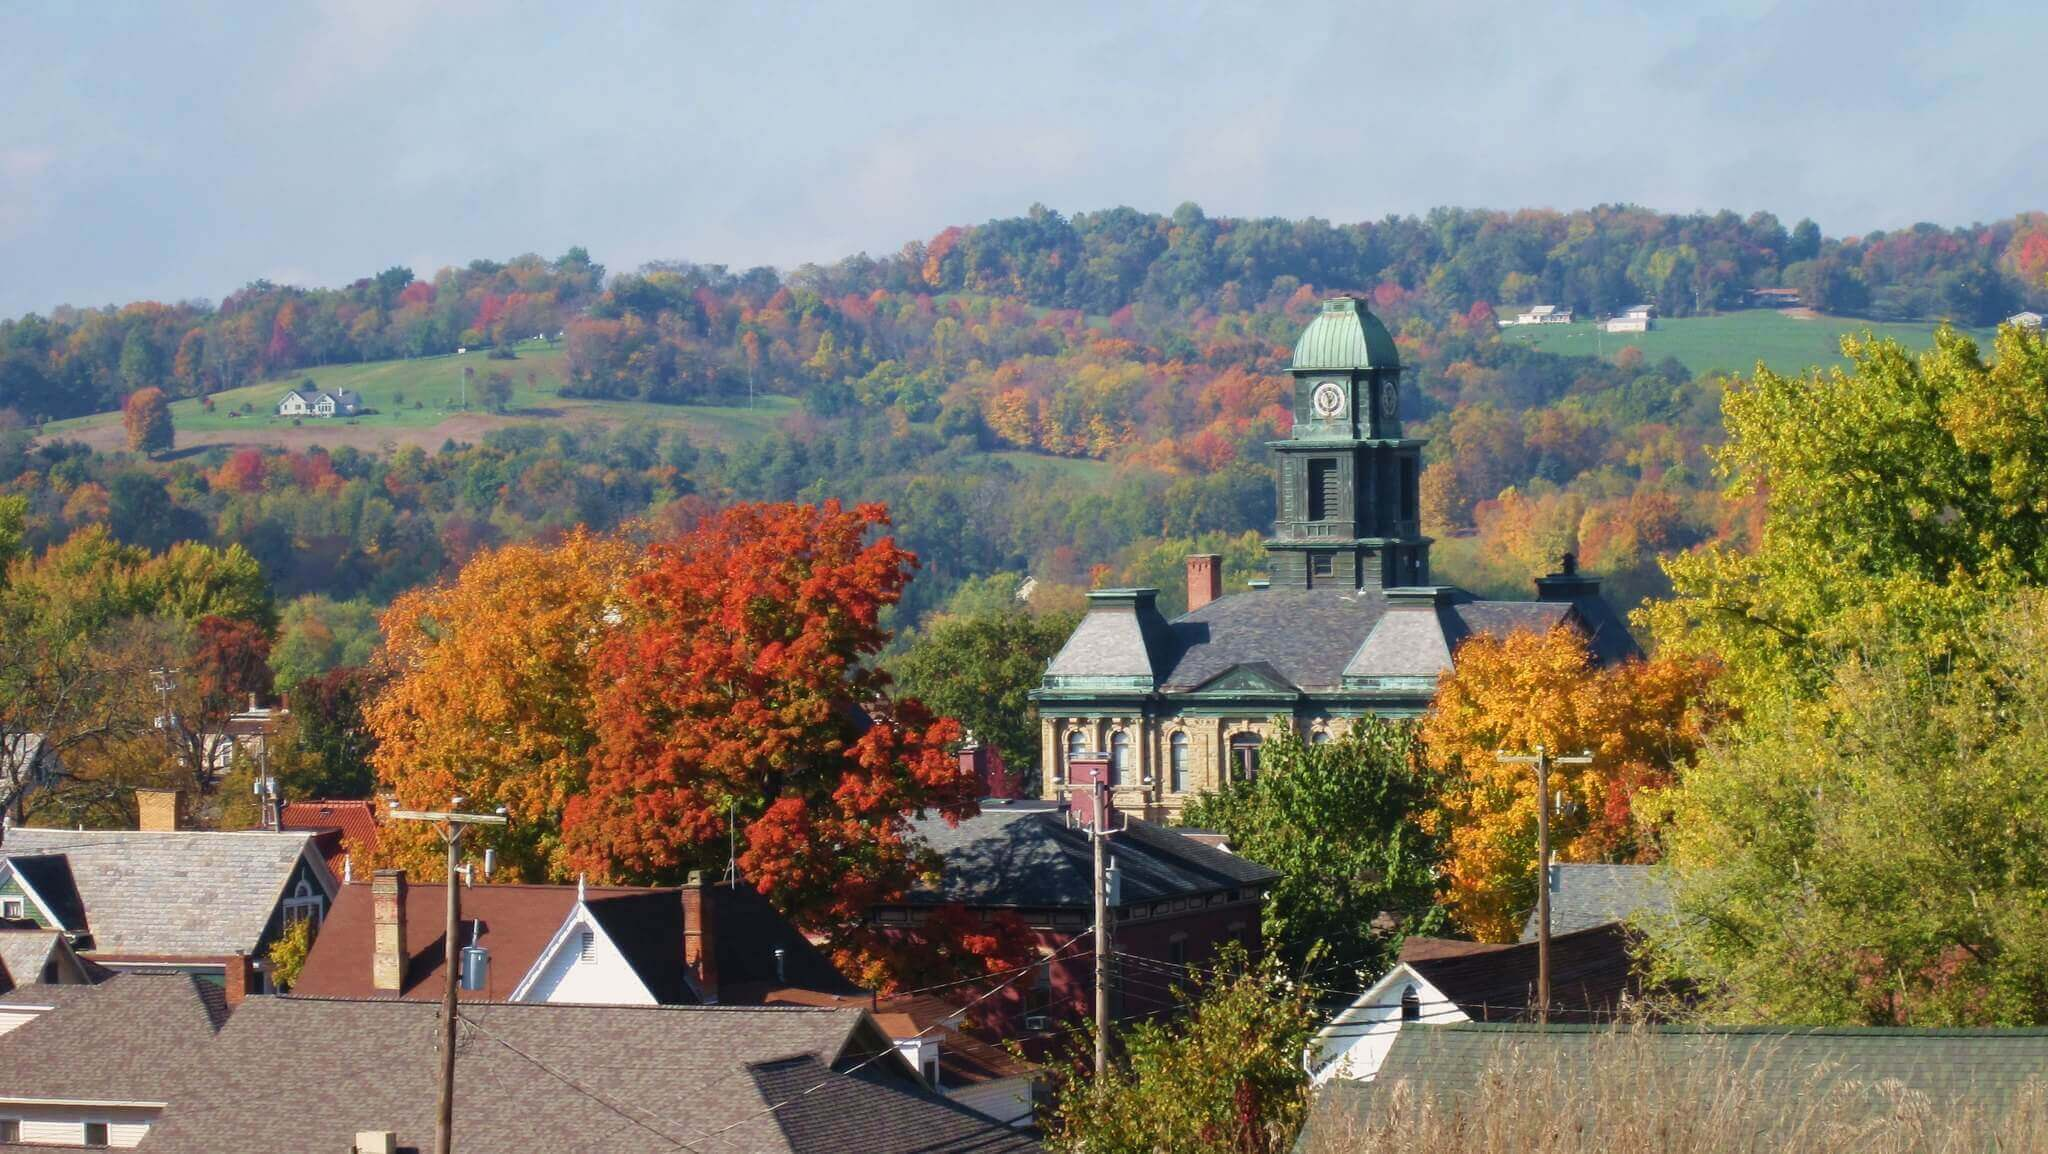 The tops of houses in front of a much taller building with a steeple and a clock. The leaves on the trees are changing color for fall. In the background there are hills and farmland.